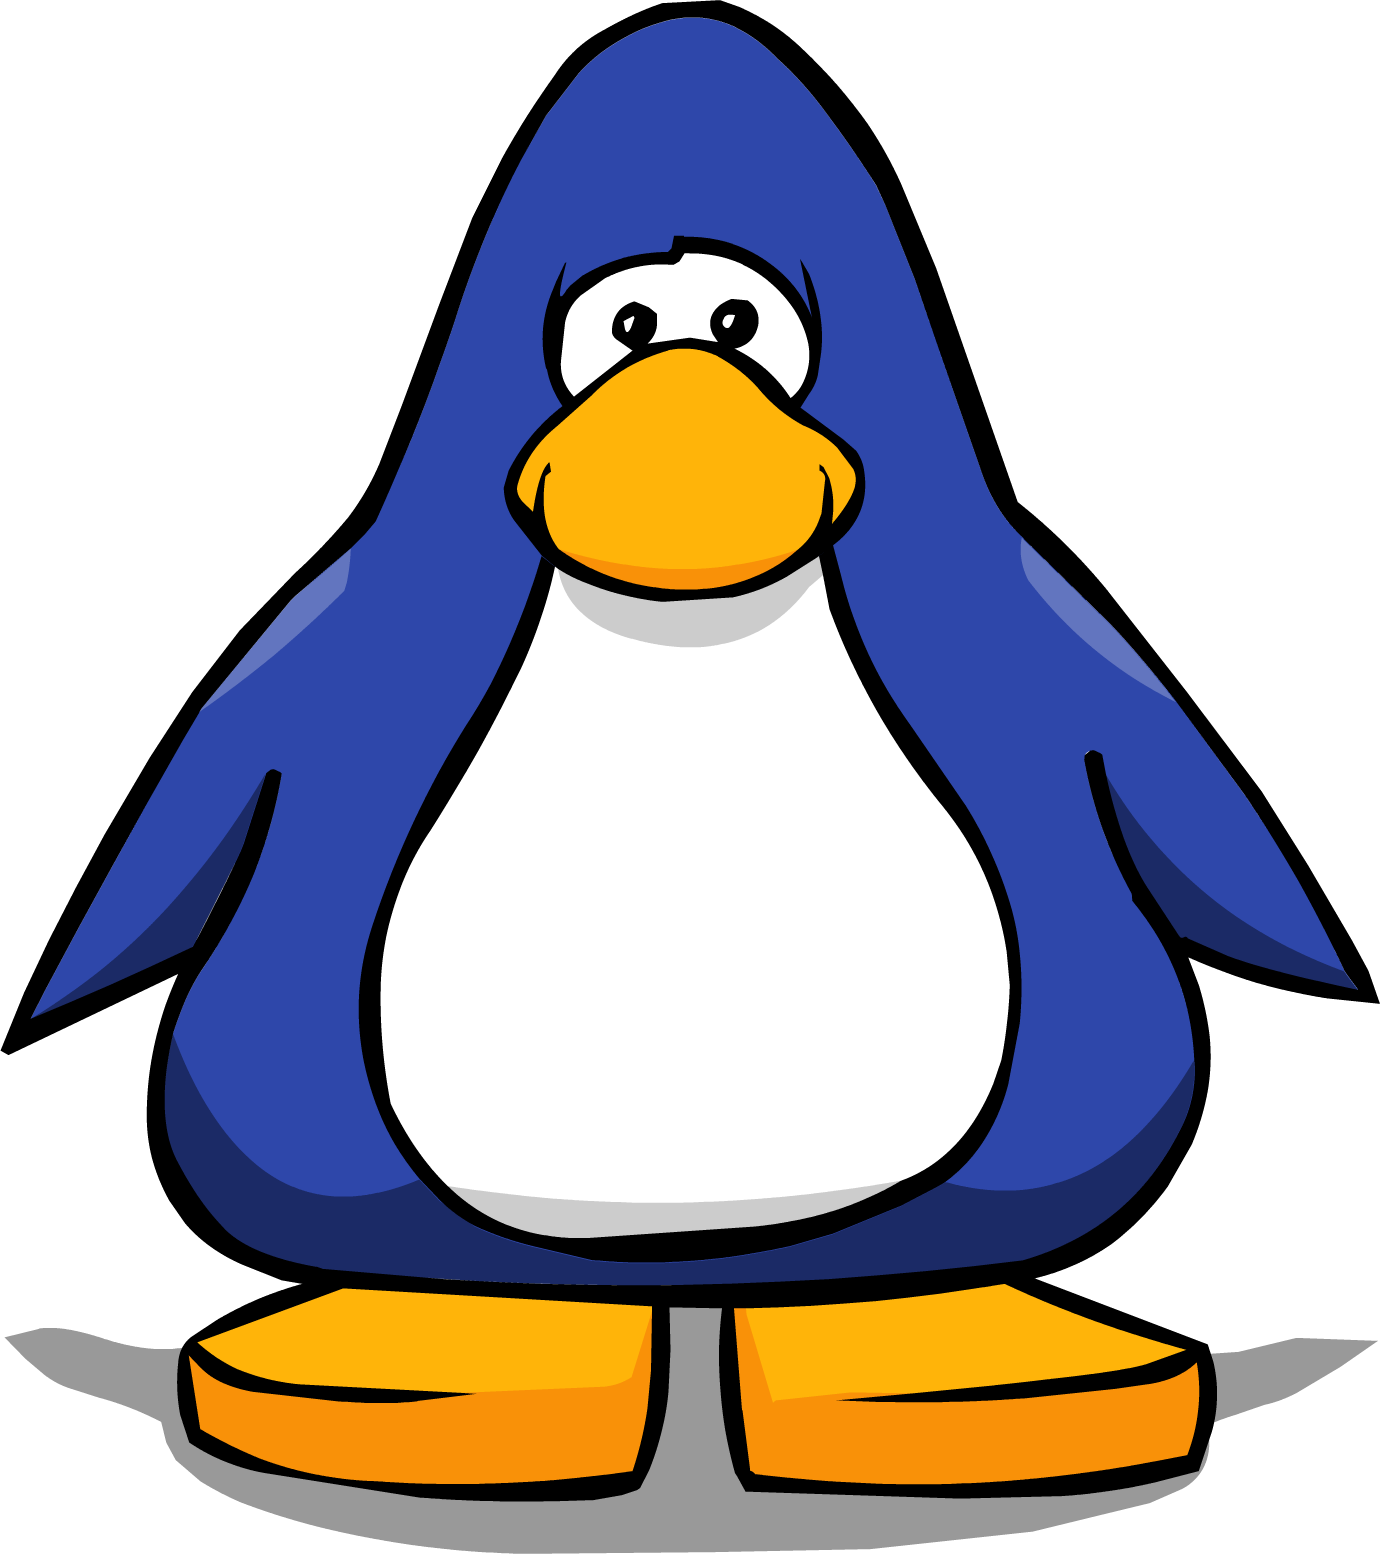 Show me more club penguin epf colouring pages - Show Me More Club Penguin Epf Colouring Pages 19